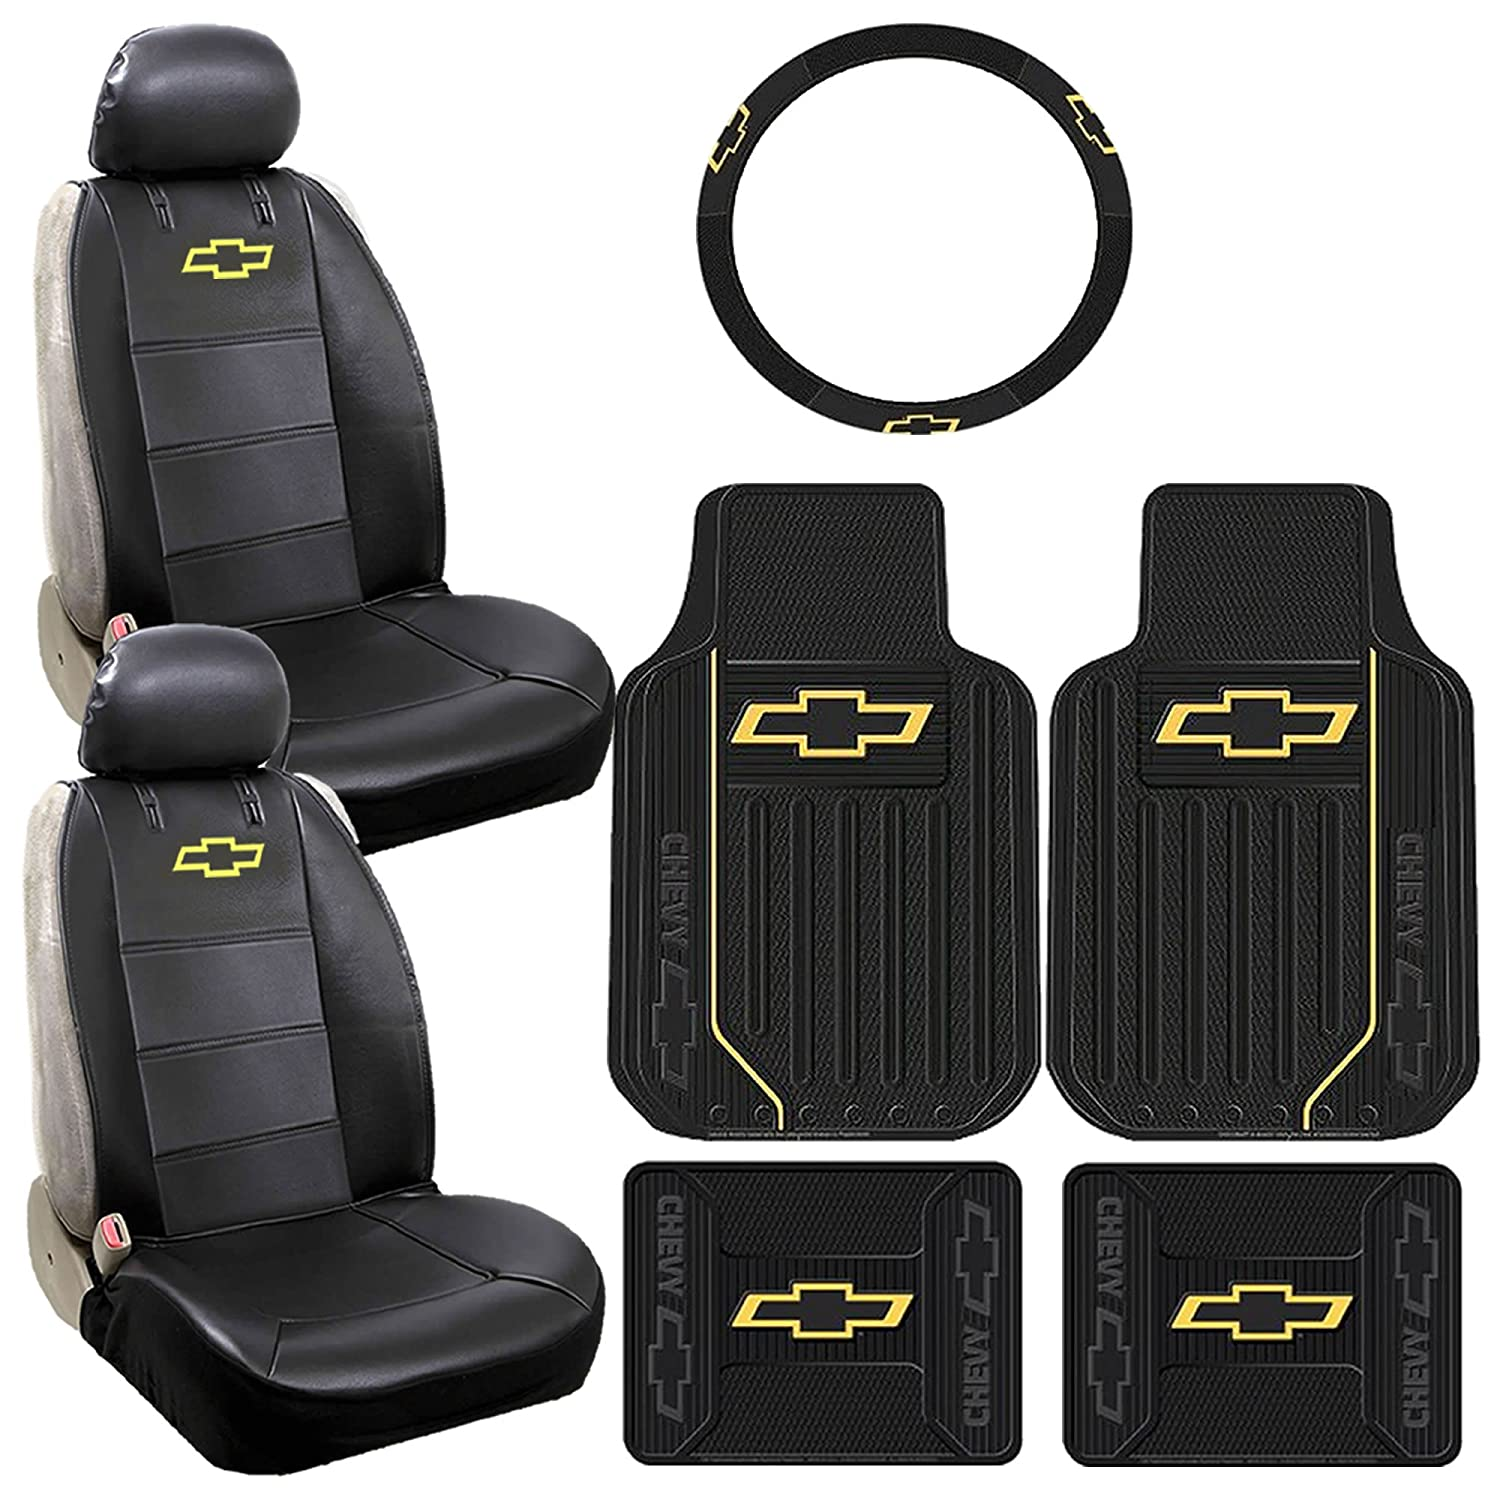 Chevy Seat Covers With Logo Velcromag